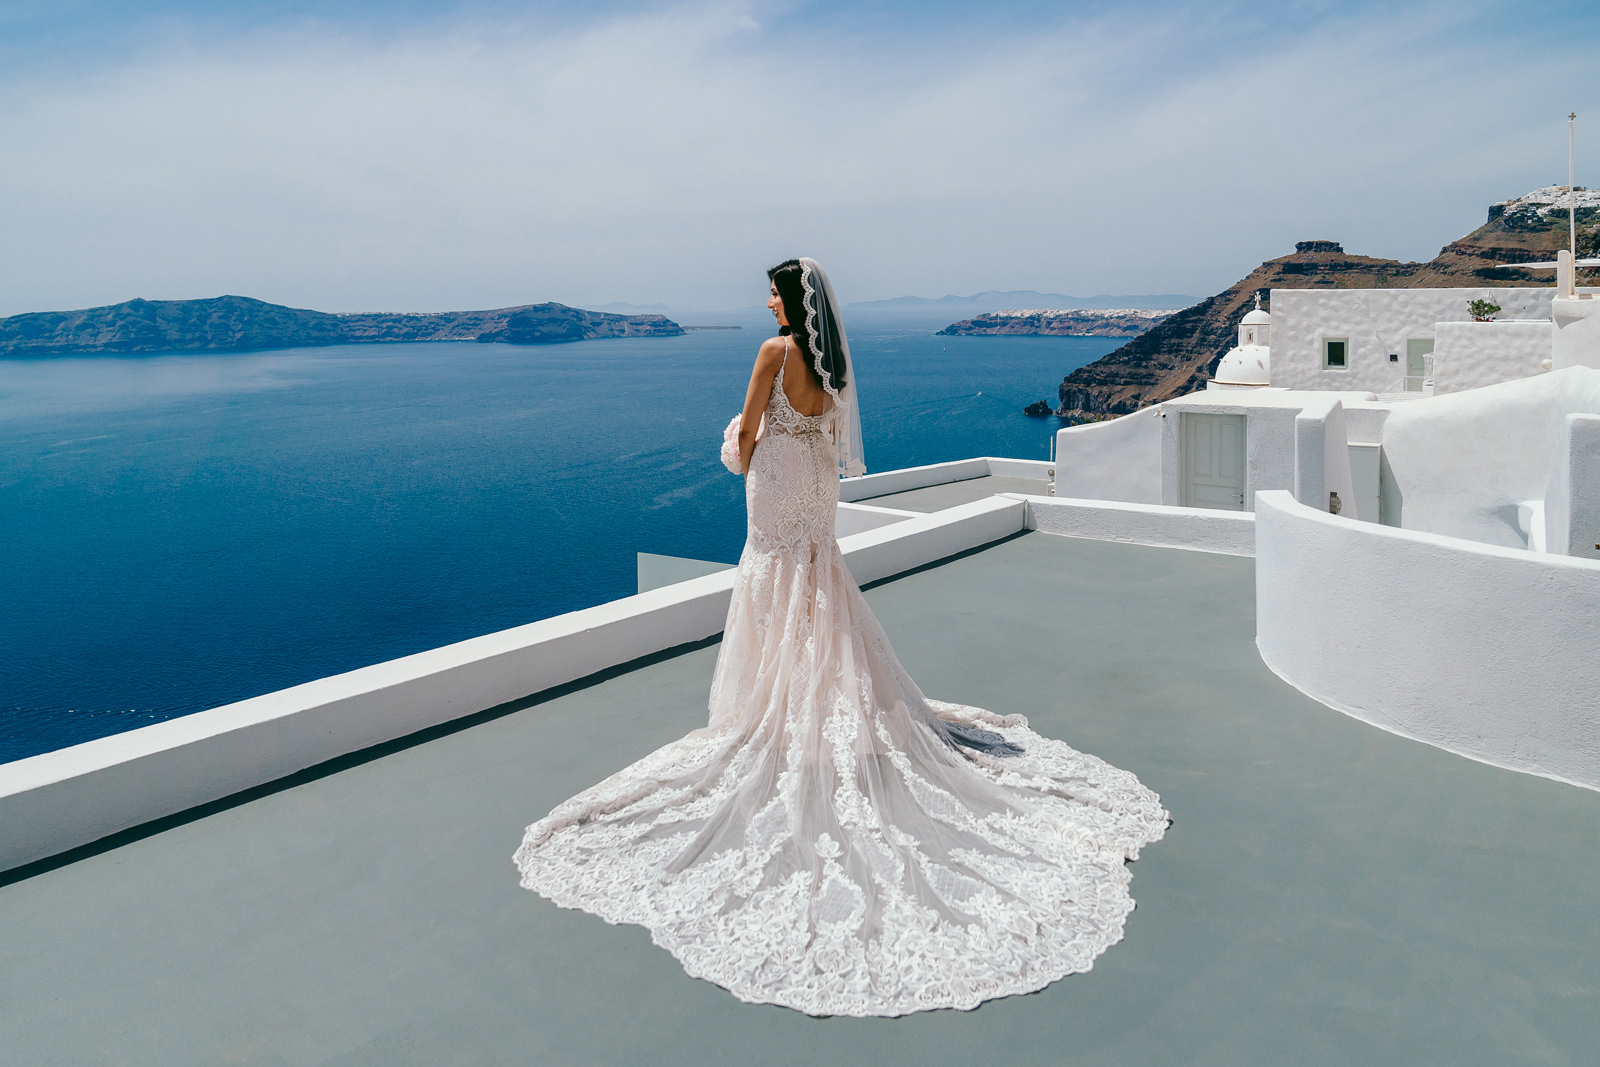 Santorini Wedding Photographer takes a rooftop photo of the brid